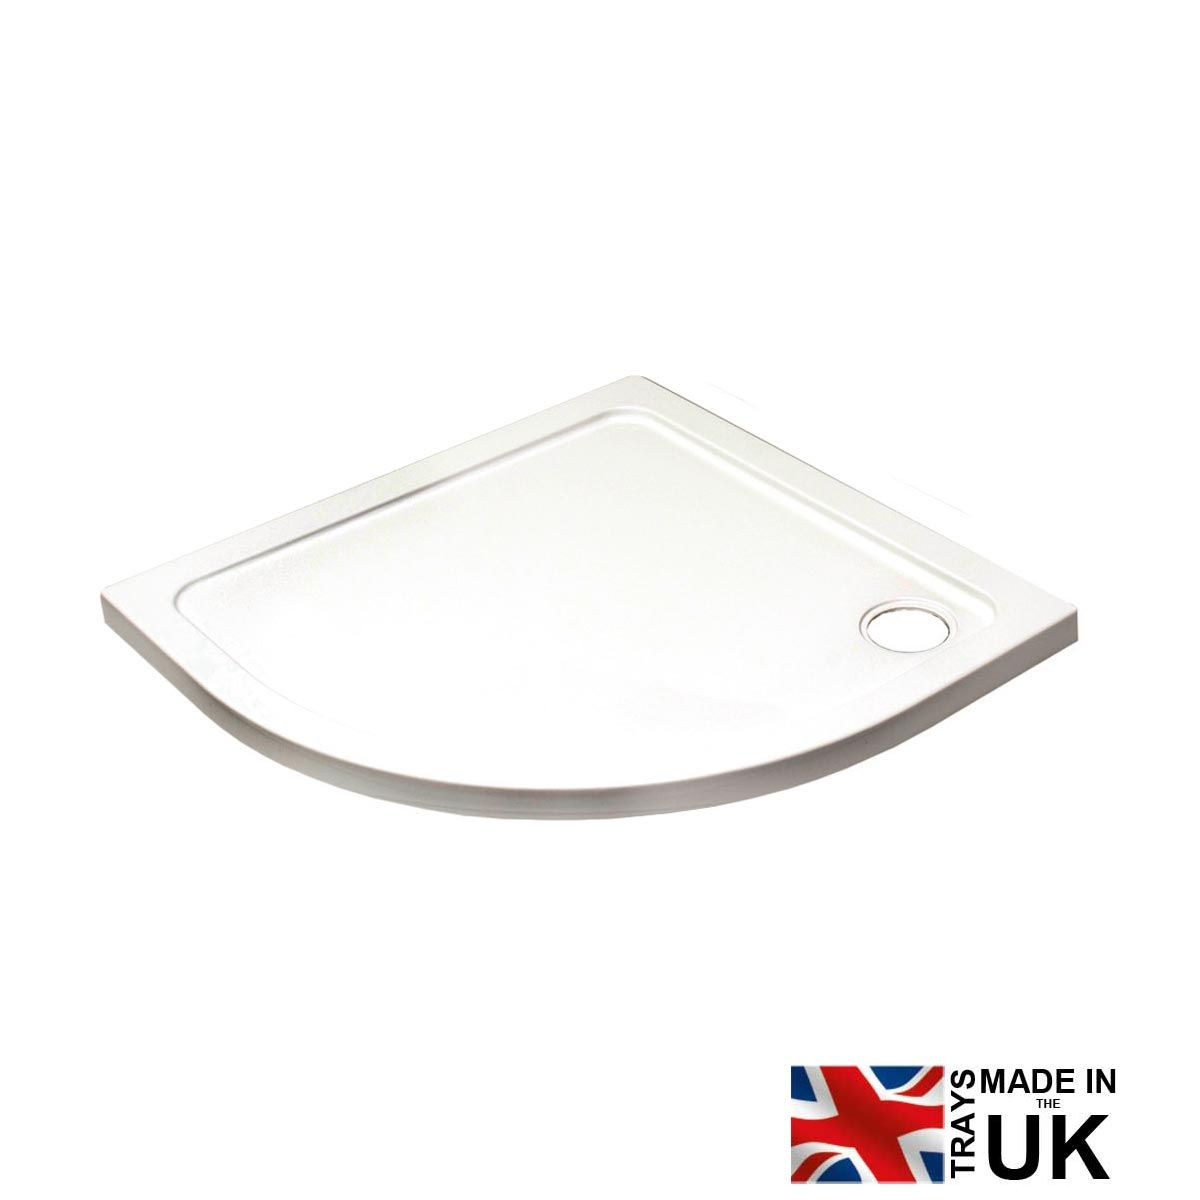 Kartell K-vit Low Profile Shower Quadrant Trays 800mm x 800mm